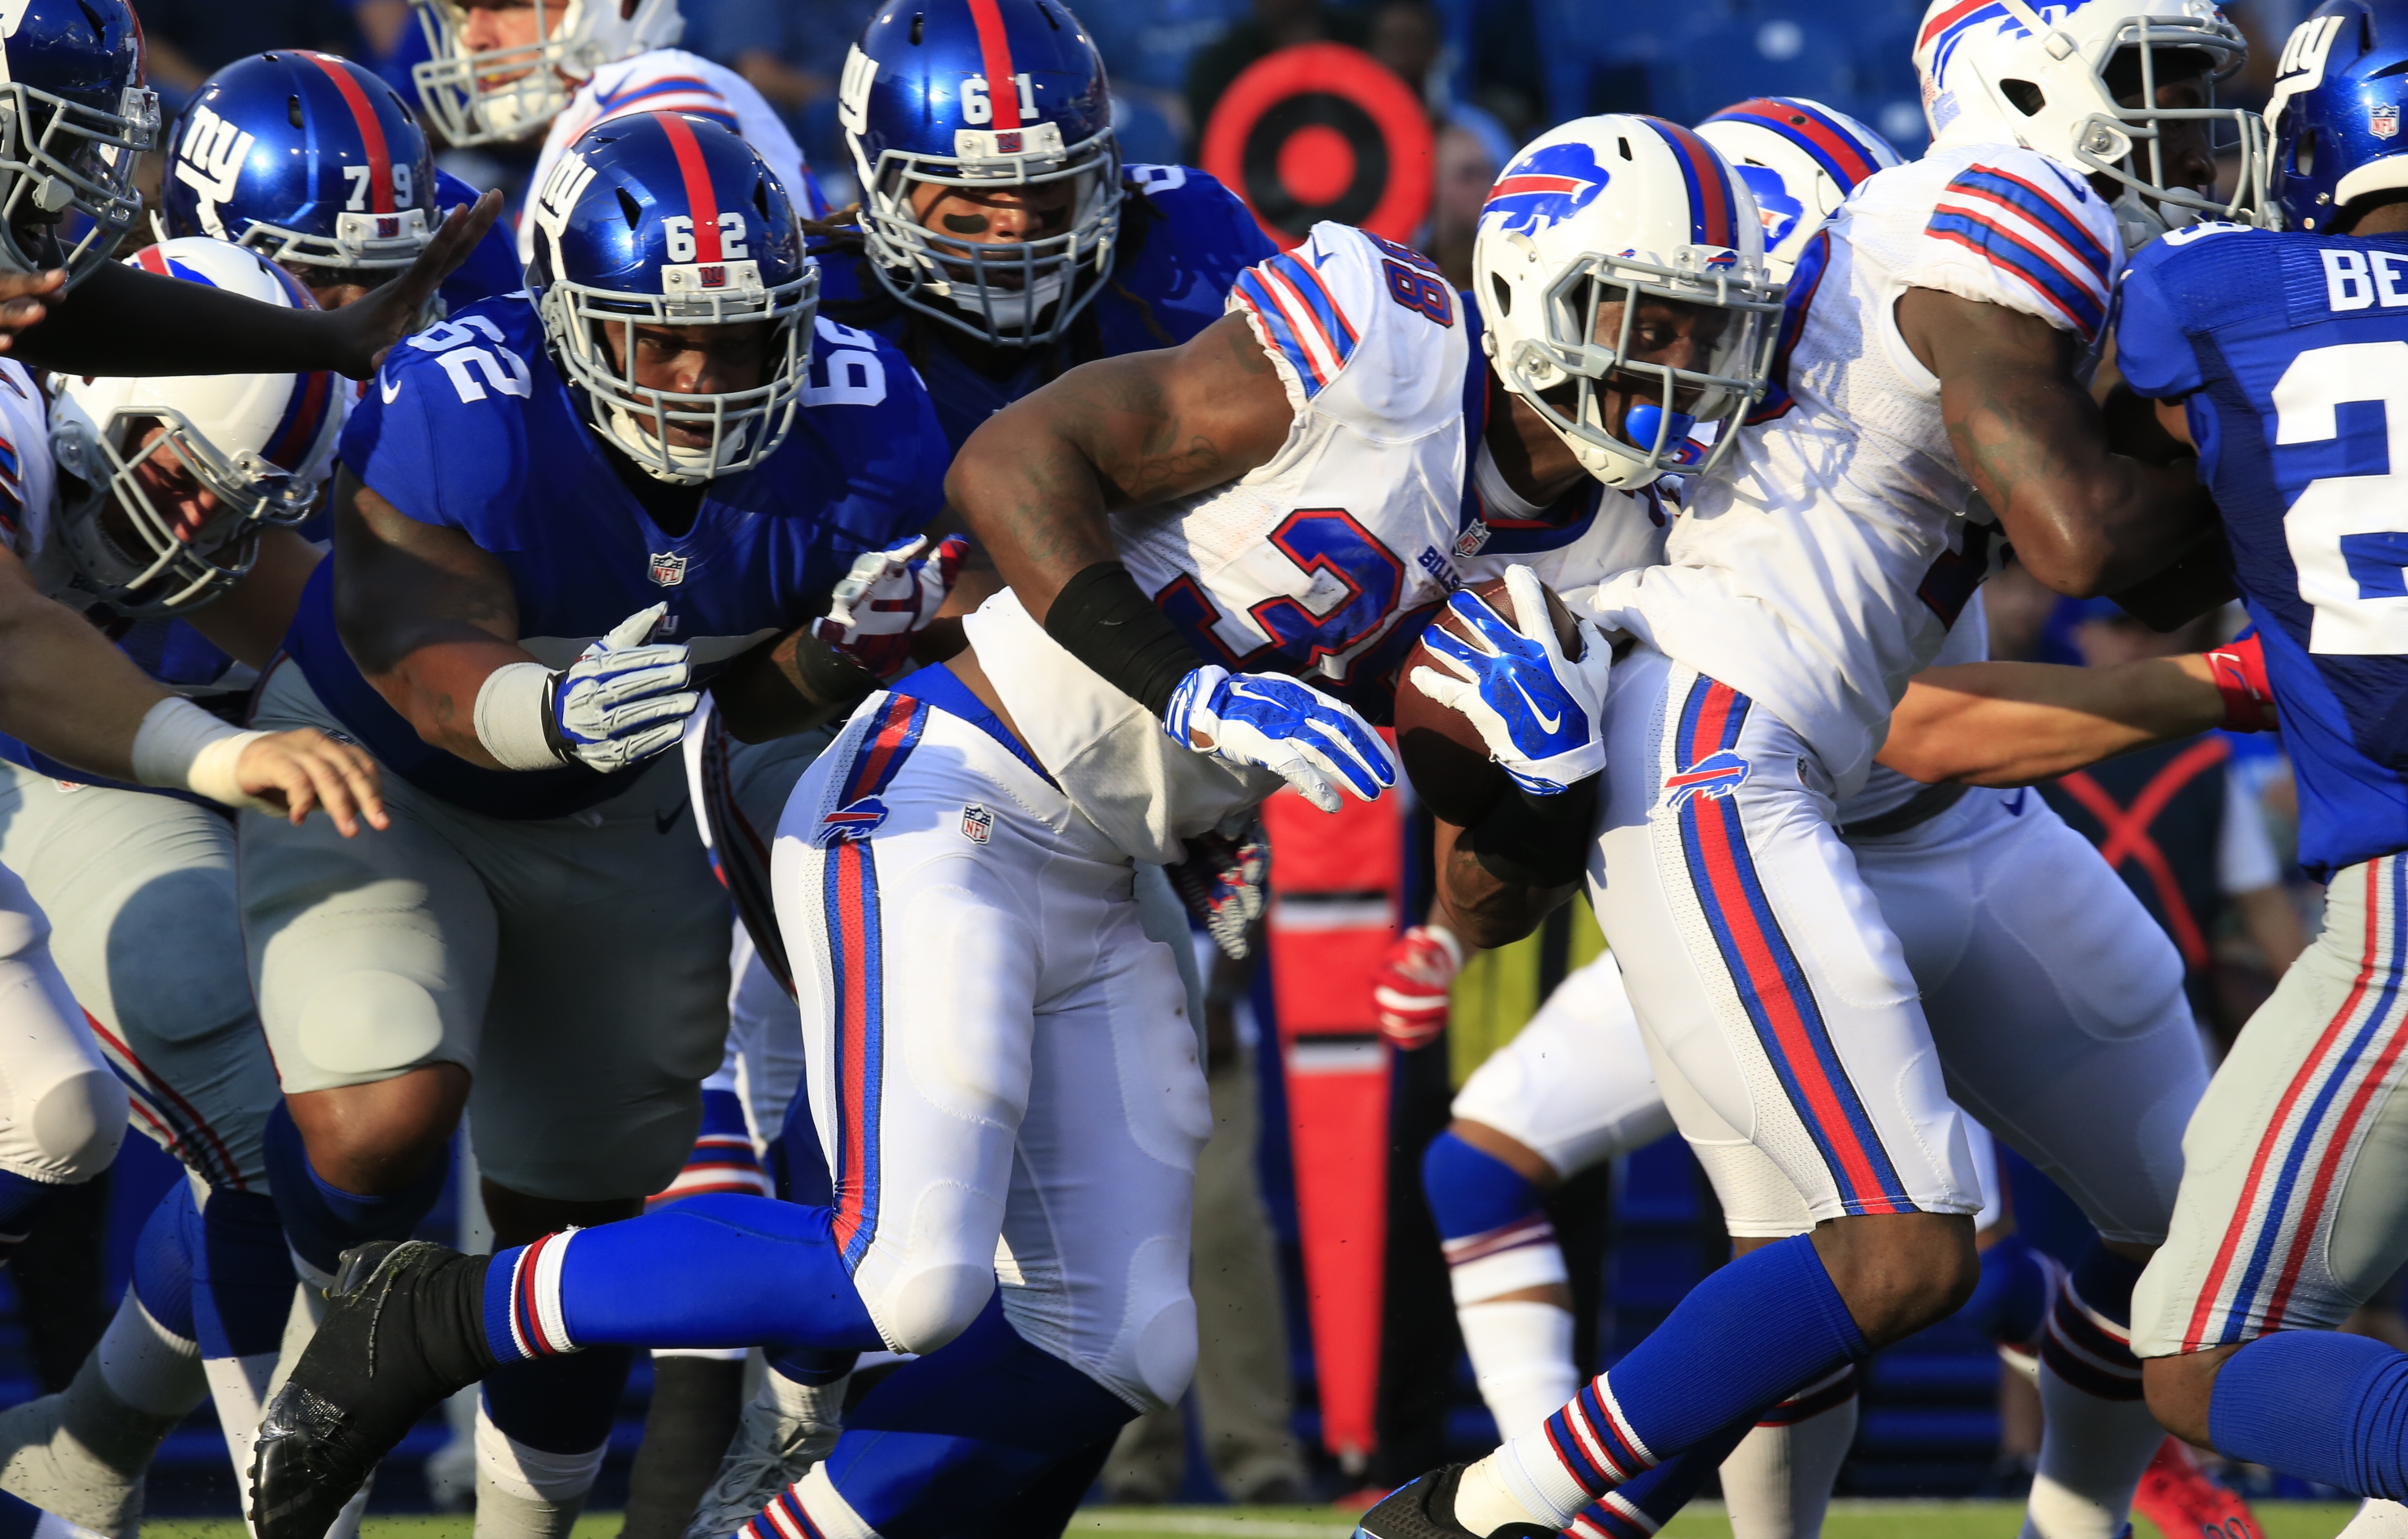 The Bills' James Wilder Jr. rushes against the New York Giants during a preseason game Aug. 20.